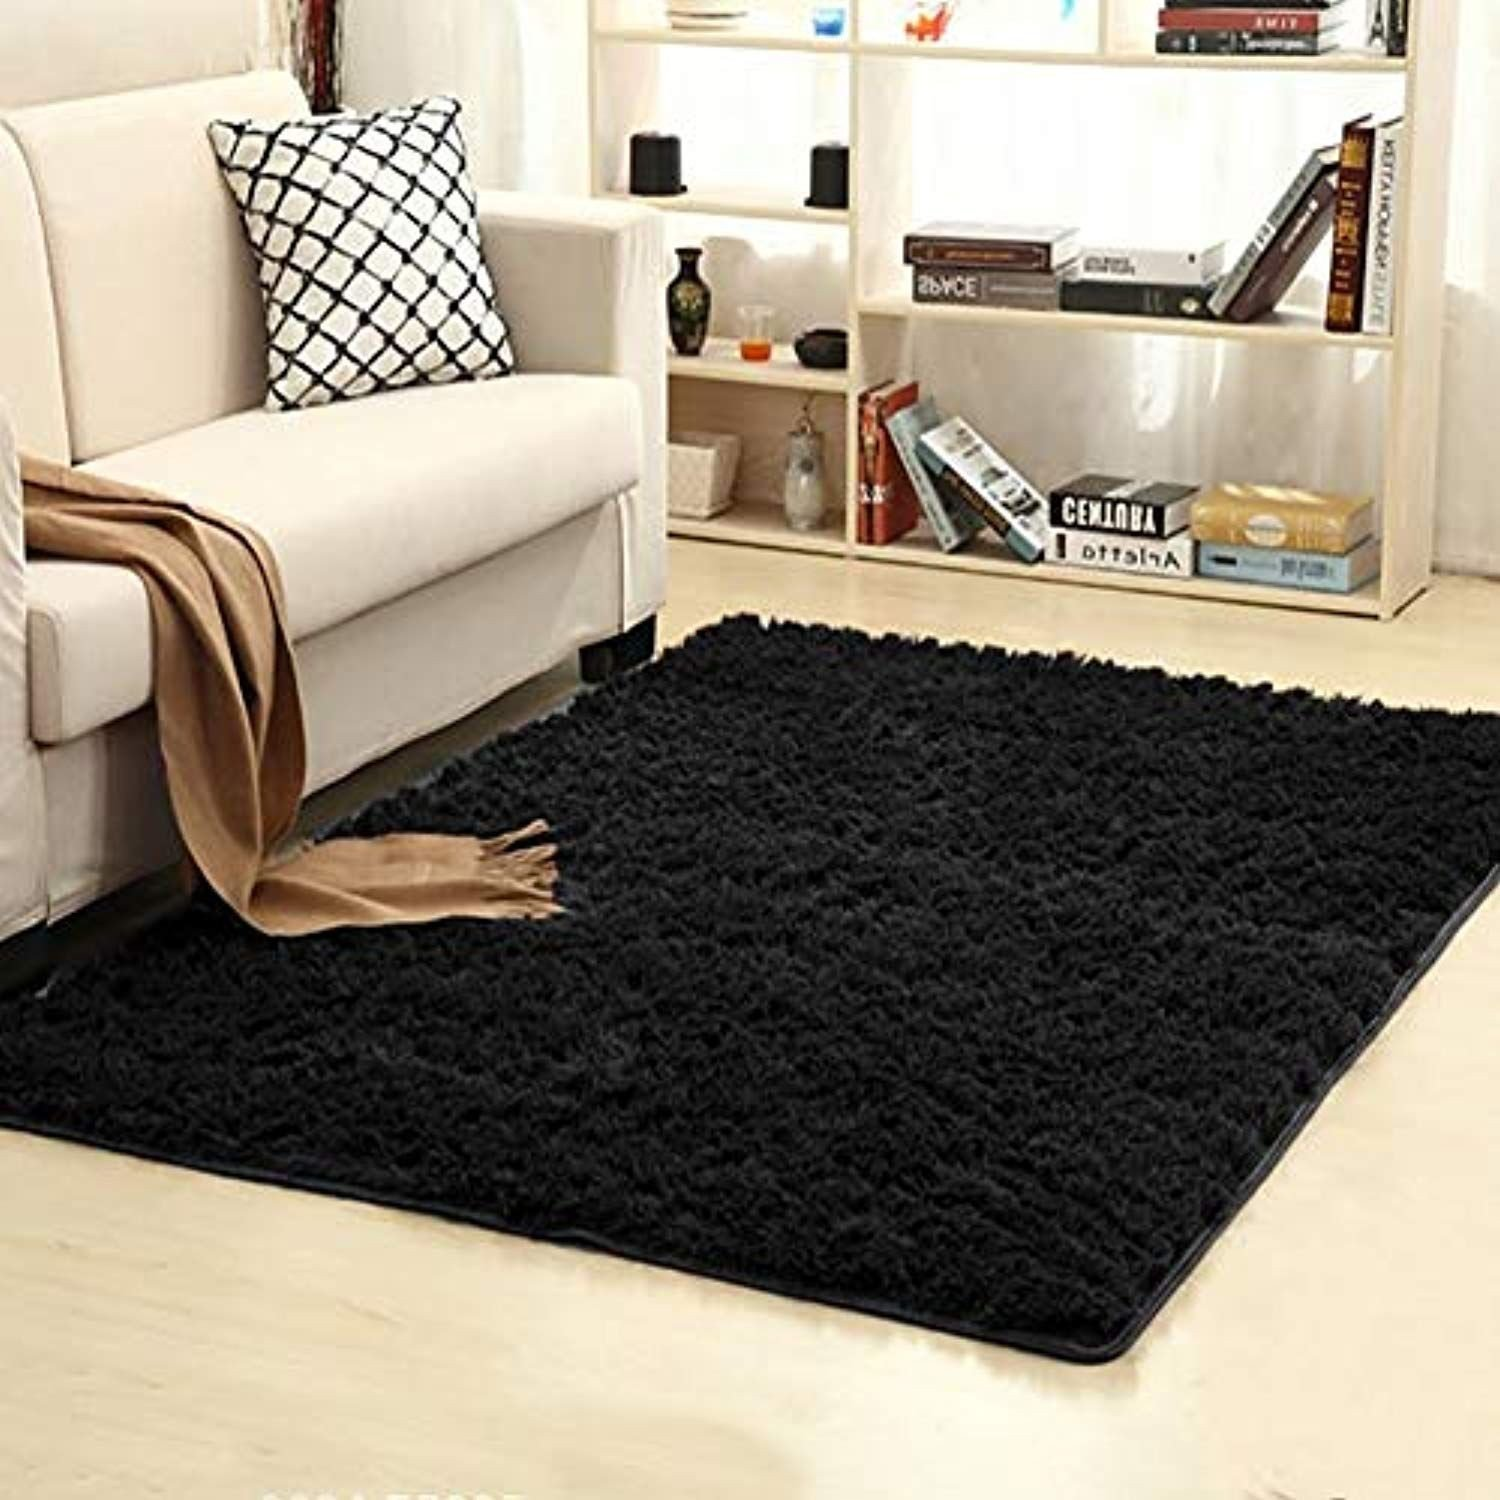 Rug On Carpet Bedroom Luxury Junovo Ultra soft Contemporary Fluffy Indoor area Rugs Home